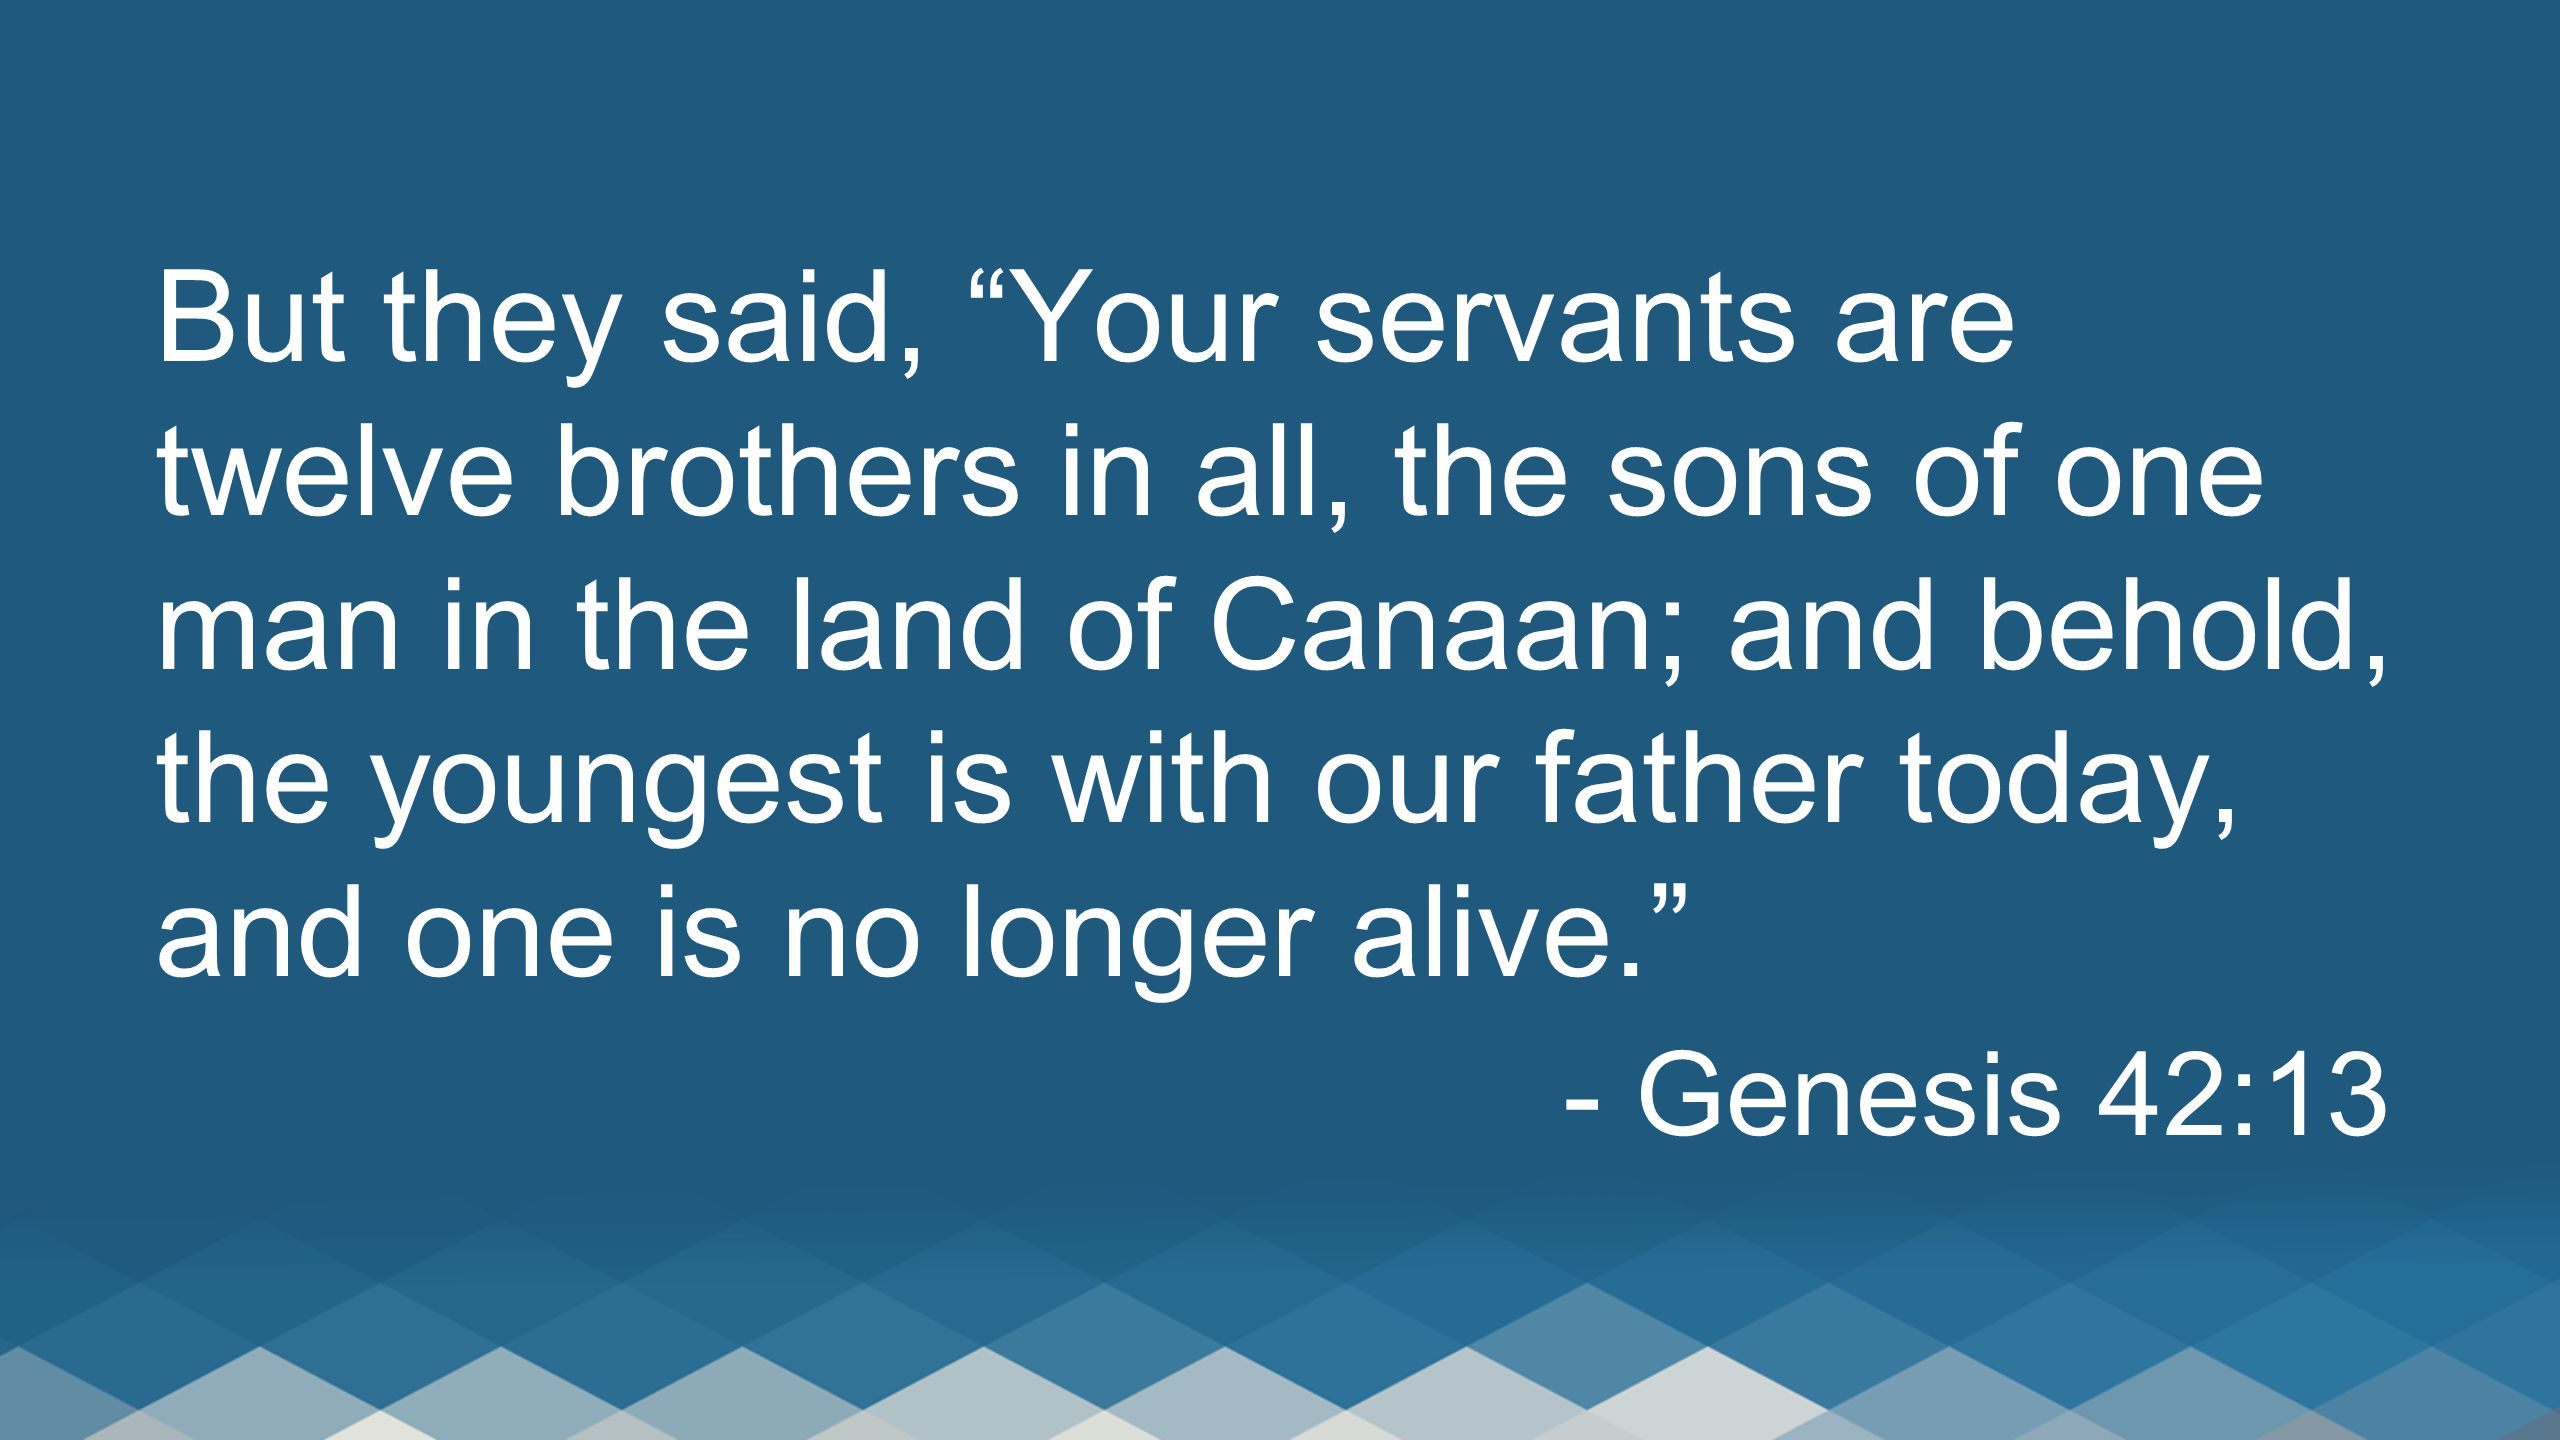 But they said, Your servants are twelve brothers in all, the sons of one man in the land of Canaan; and behold, the youngest is with our father today, and one is no longer alive.